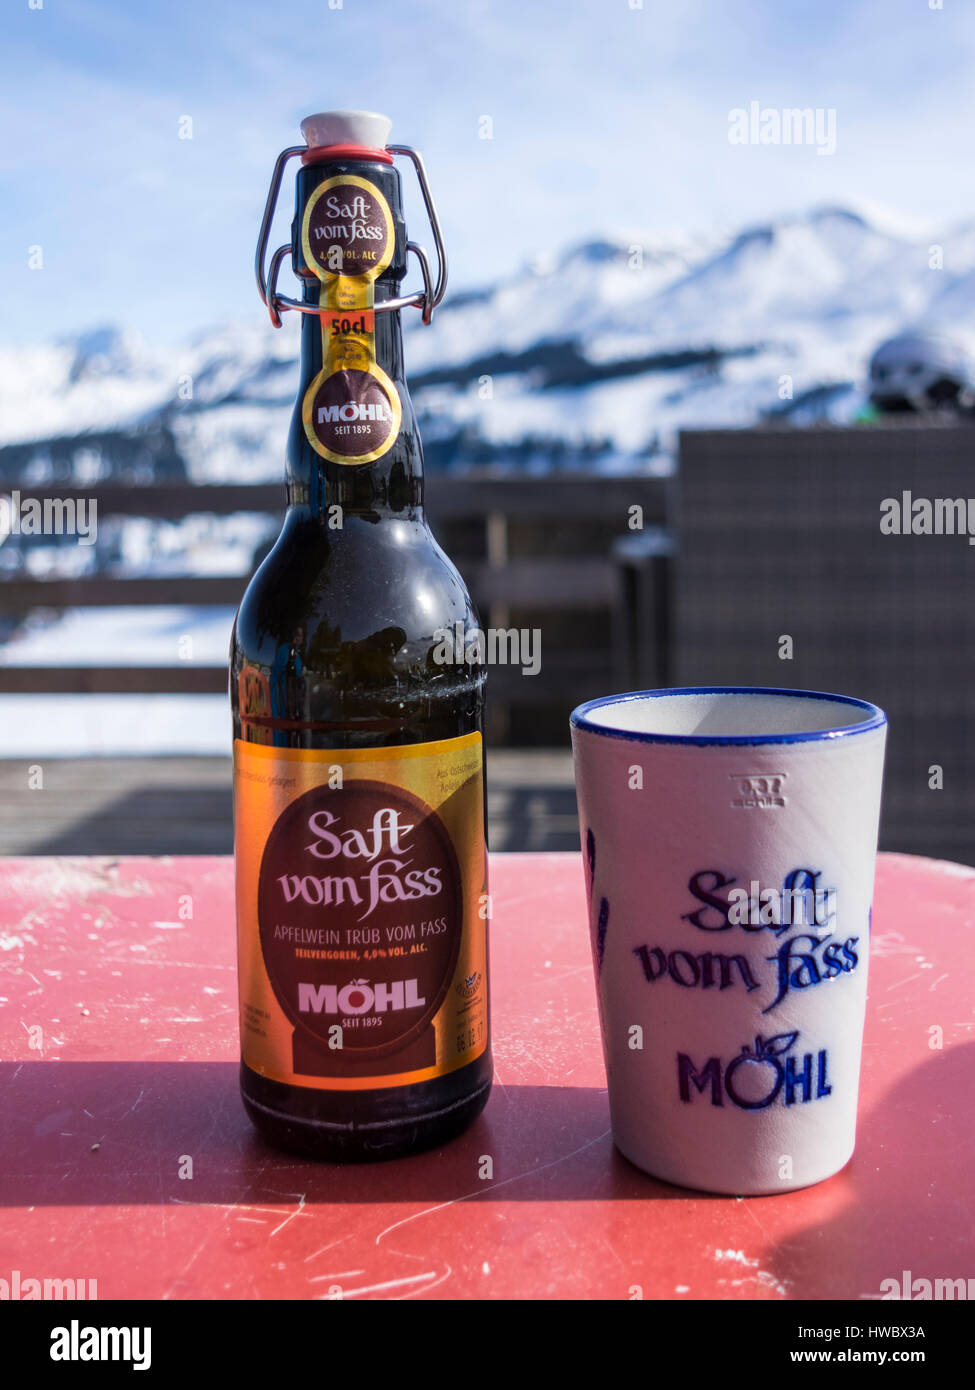 Bottle of Möhl Apfelwein 'Saft vom Fass', a traditional Swiss cider, with a ceramic beaker. Alpine - Stock Image